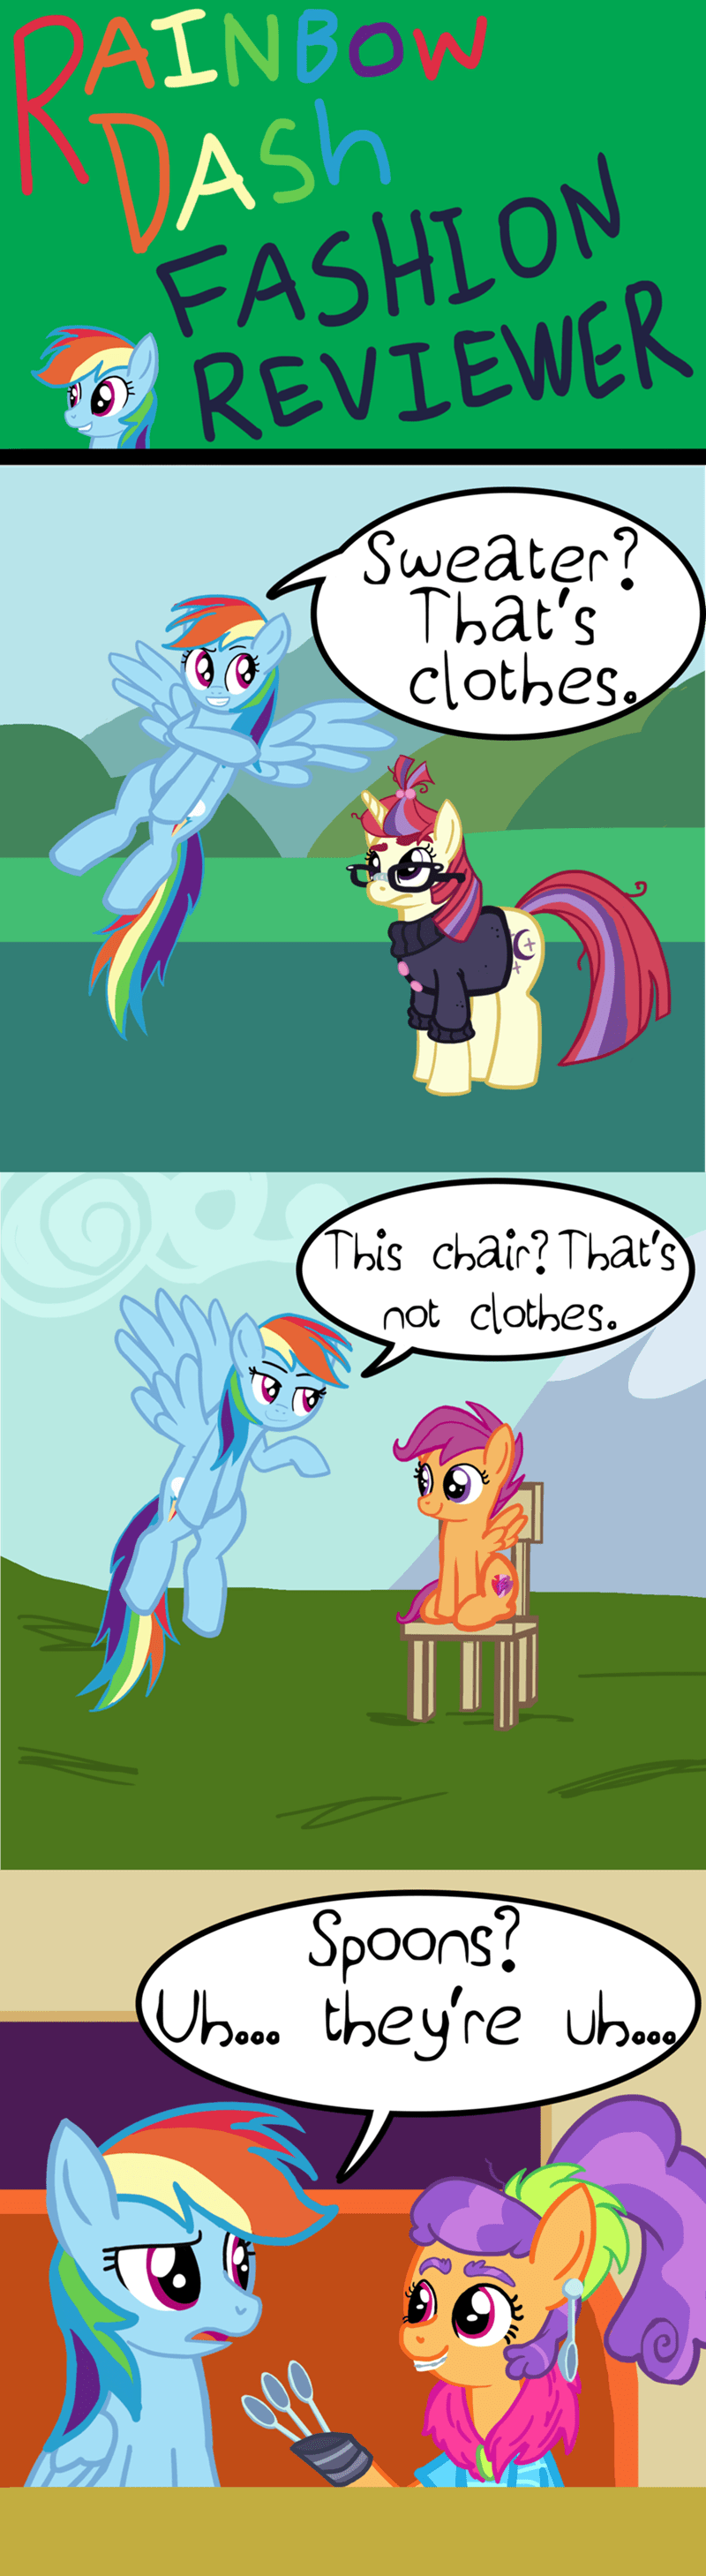 plaid stripes,moon dancer,spoons,comic,Scootaloo,rainbow dash